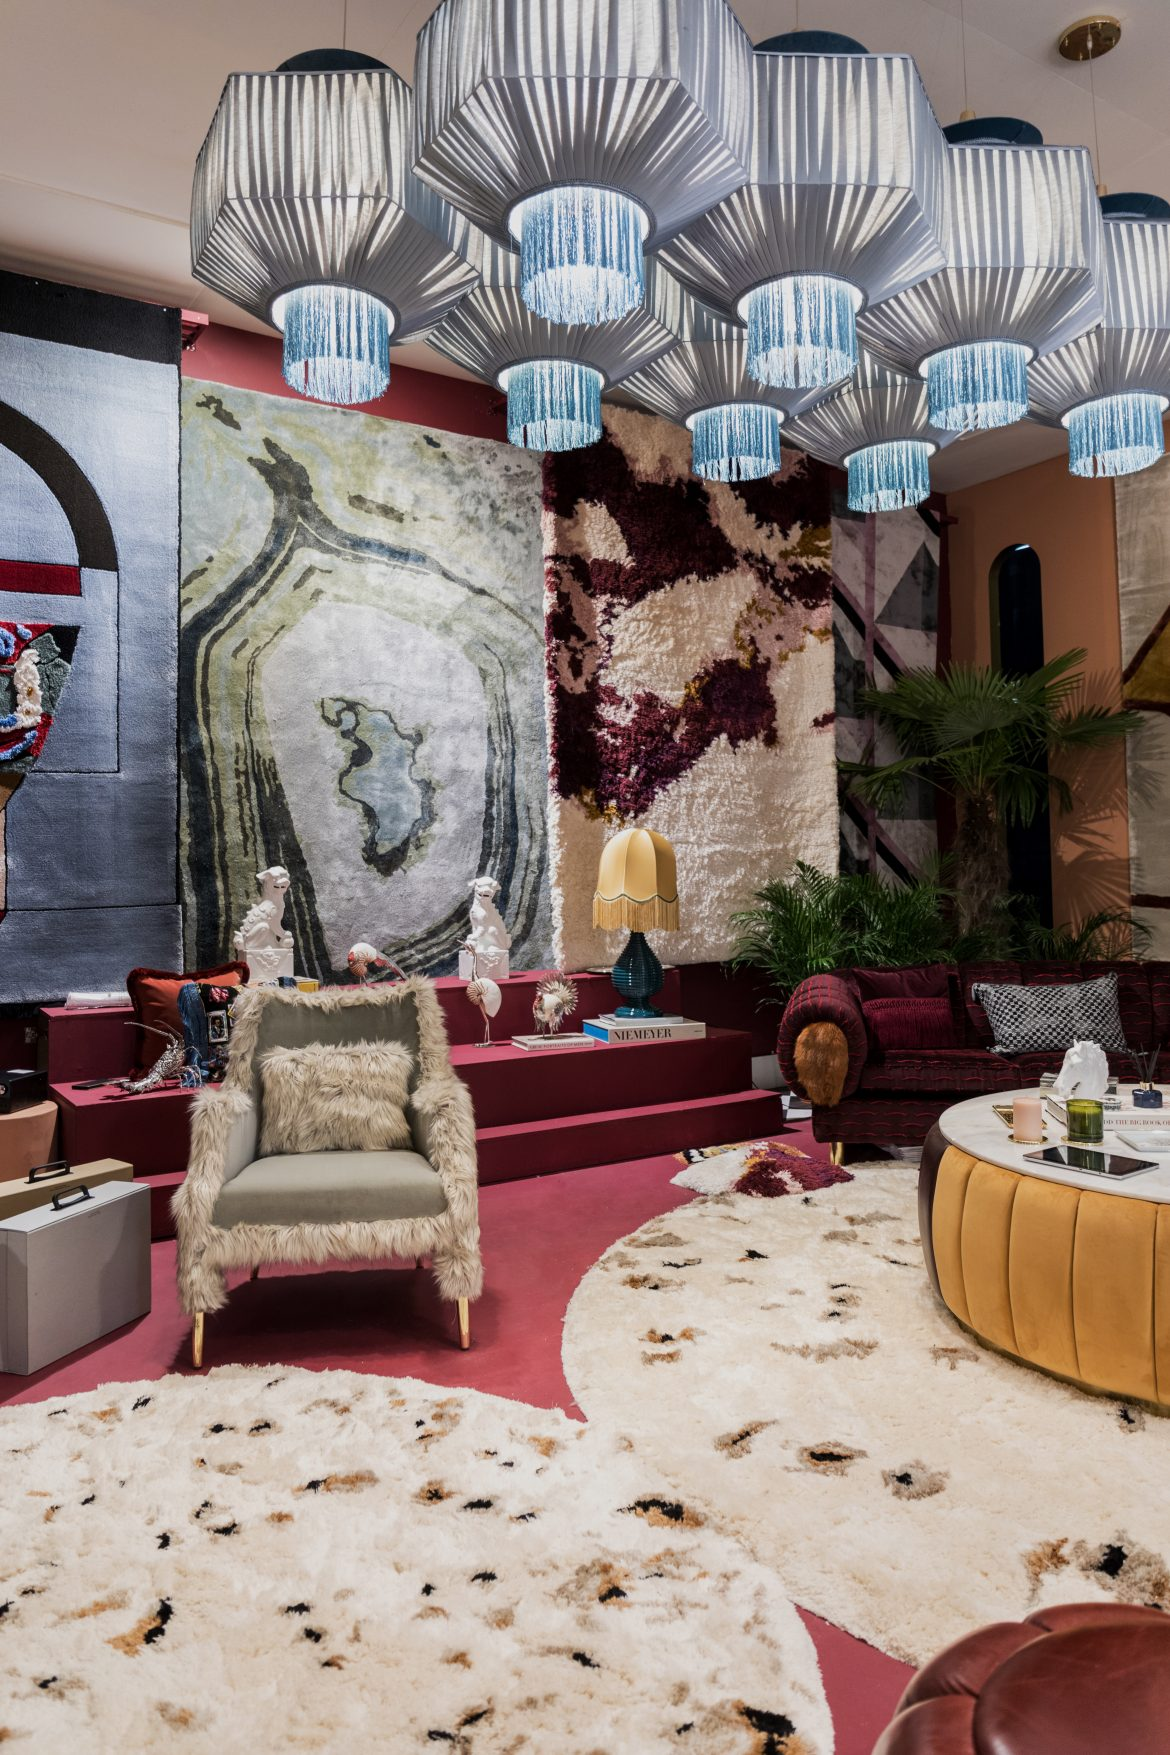 Luxury Brands To Visit At Isaloni 2019 isaloni Luxury Brands To Visit At Isaloni 2019 Luxury Brands To Visit At Isaloni 2019 9